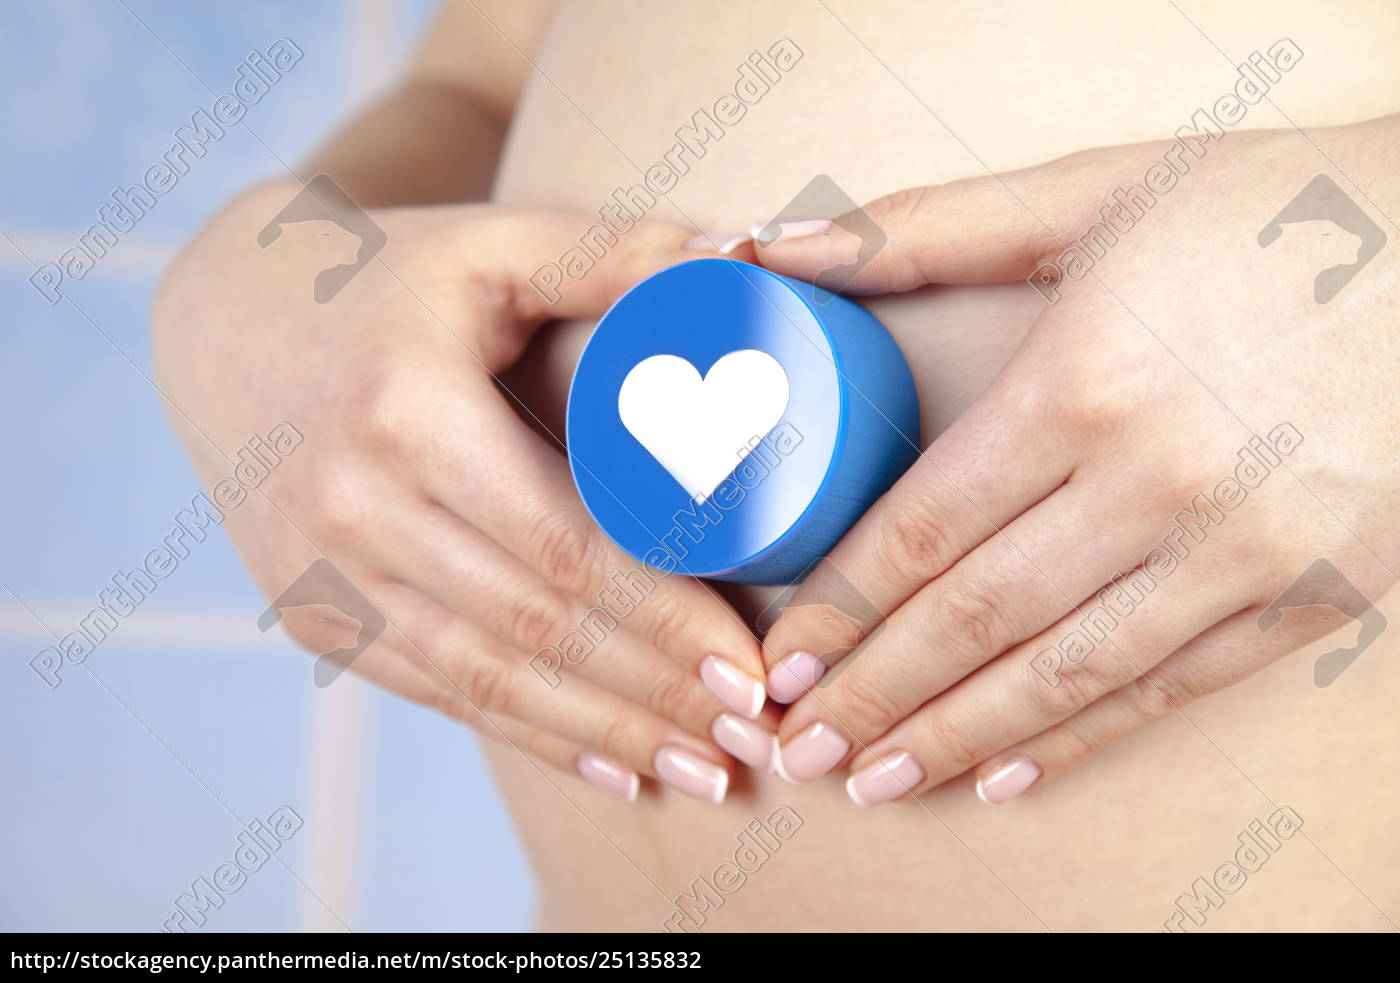 heart, , beautiful, pregnant, woman, belly - 25135832